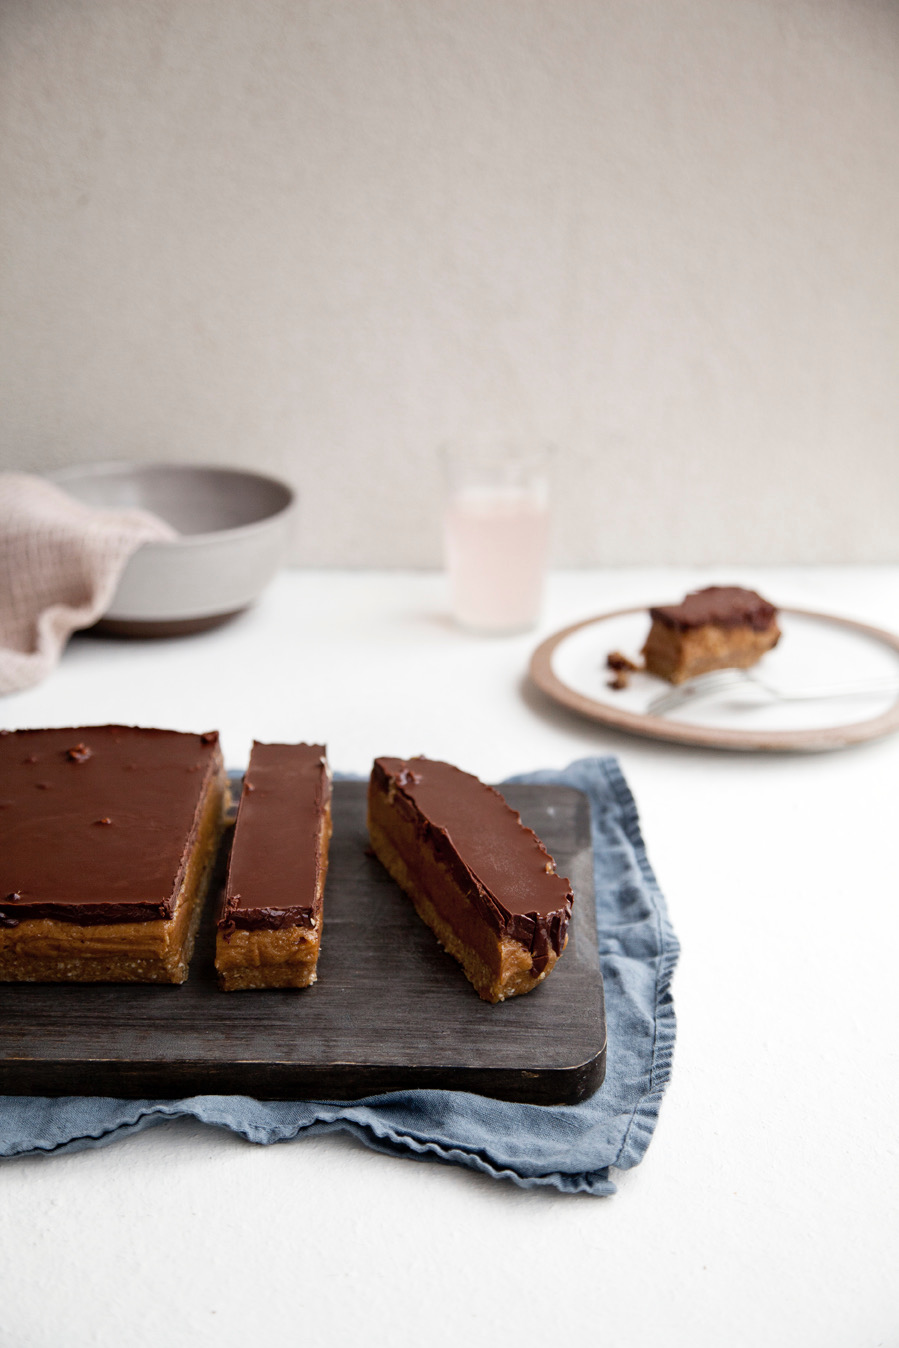 Caramel Slice // Kenkō Kitchen. Image taken from the Kenkō Kitchen Cookbook. Cookbook out now through Hardie Grant/Rizzoli. Photography by  Elisa Watson , styling by Kate Bradley (Kenkō Kitchen) and Sally Bradley.